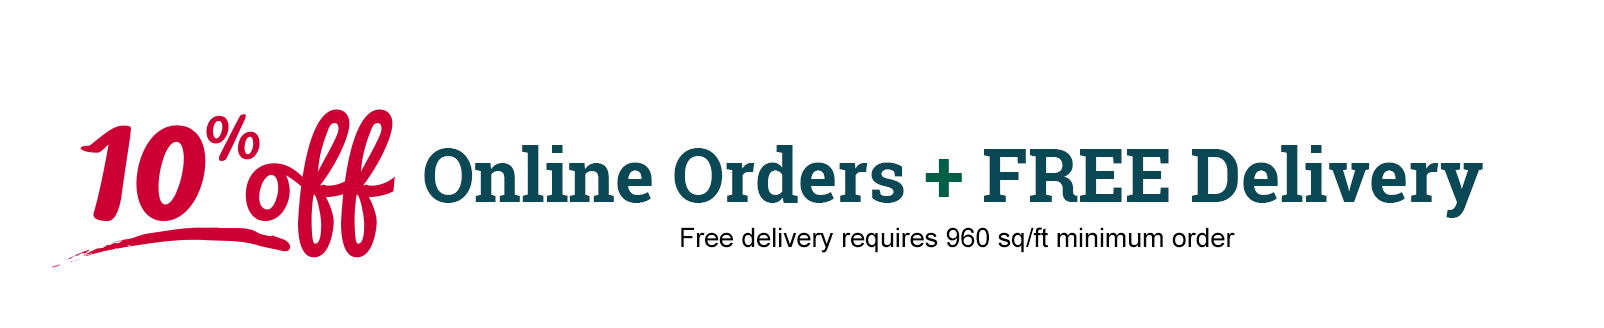 10% Off Online Orders + FREE Delivery